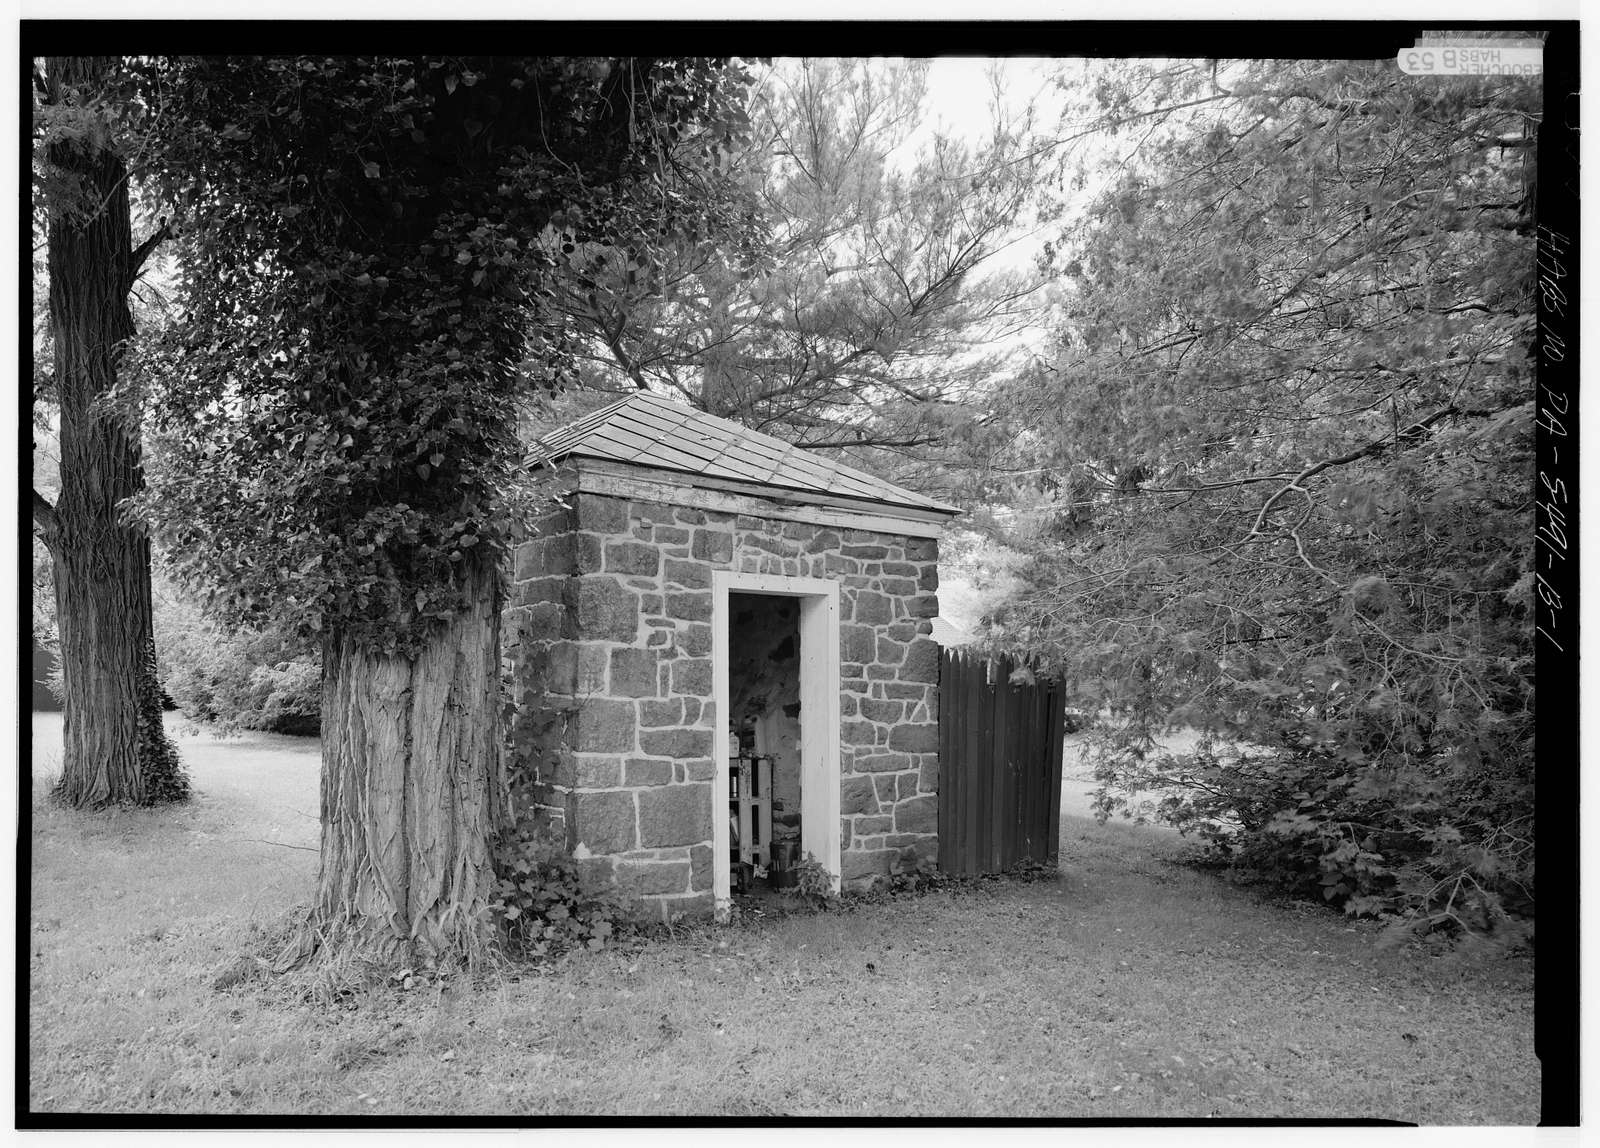 Naylor House, North Outbuilding, Swift & Silver Lake Roads, Langhorne, Bucks County, PA